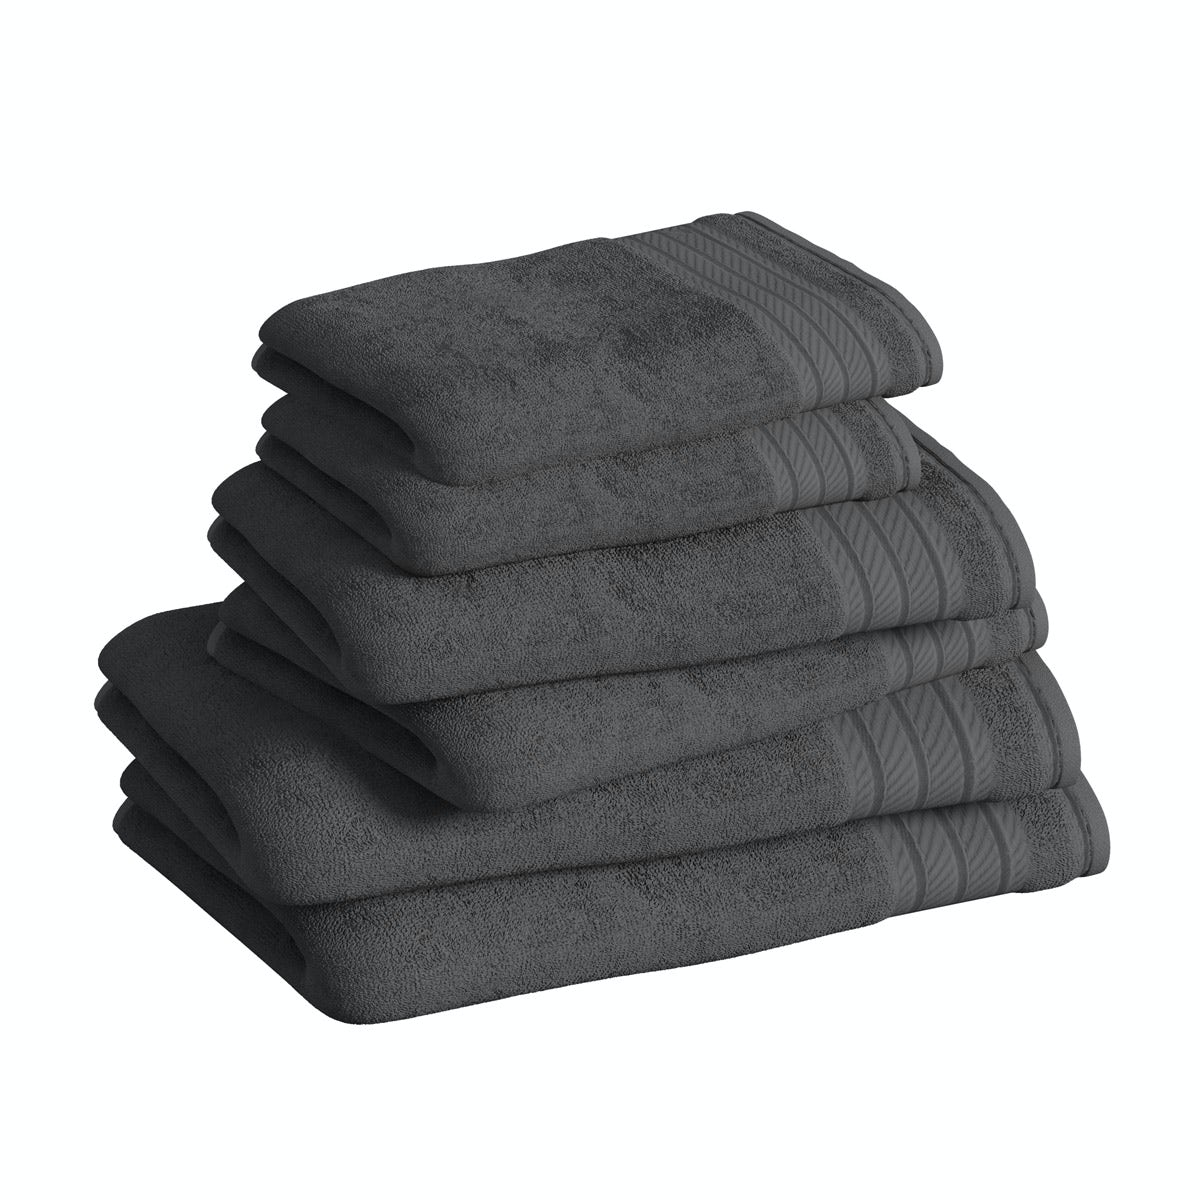 Supreme charcoal grey towel bale